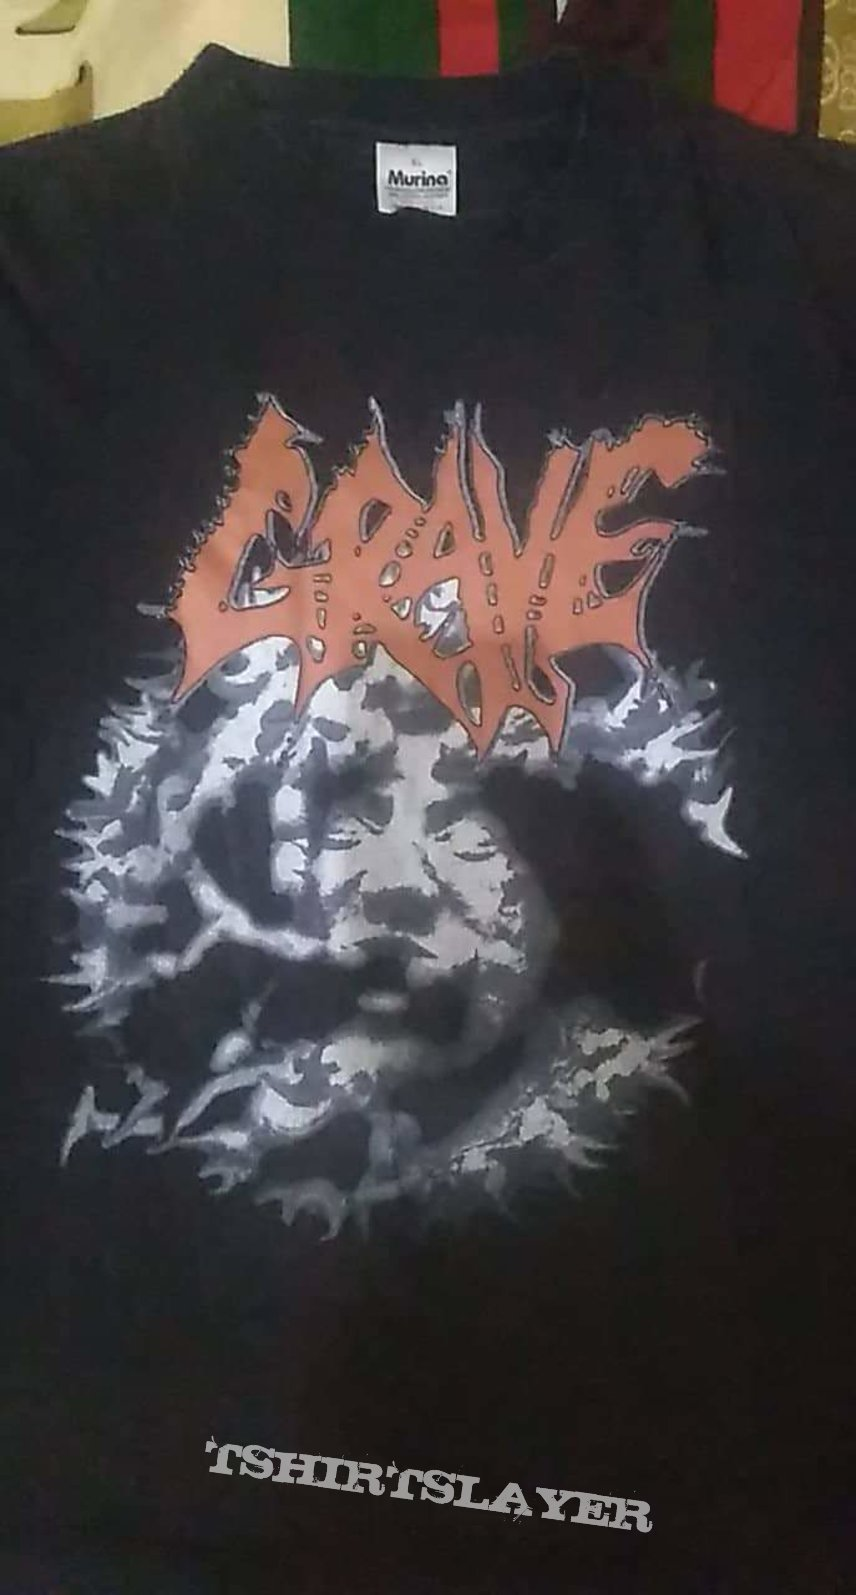 Grave Soulles Thru' The State Tour US 1994 Original